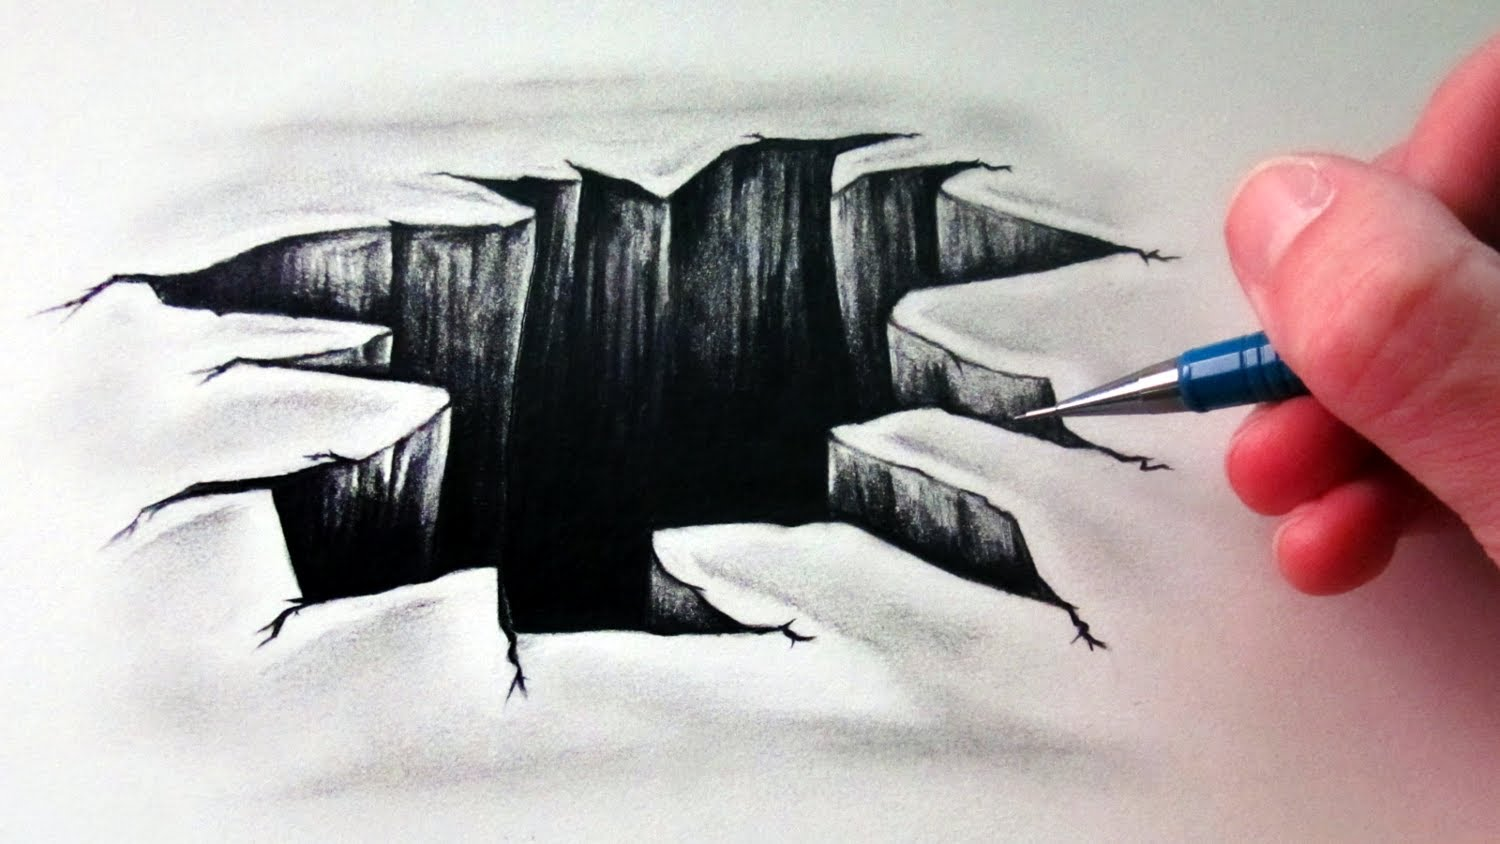 Drawn brick crack How Optical Illusion Hole to